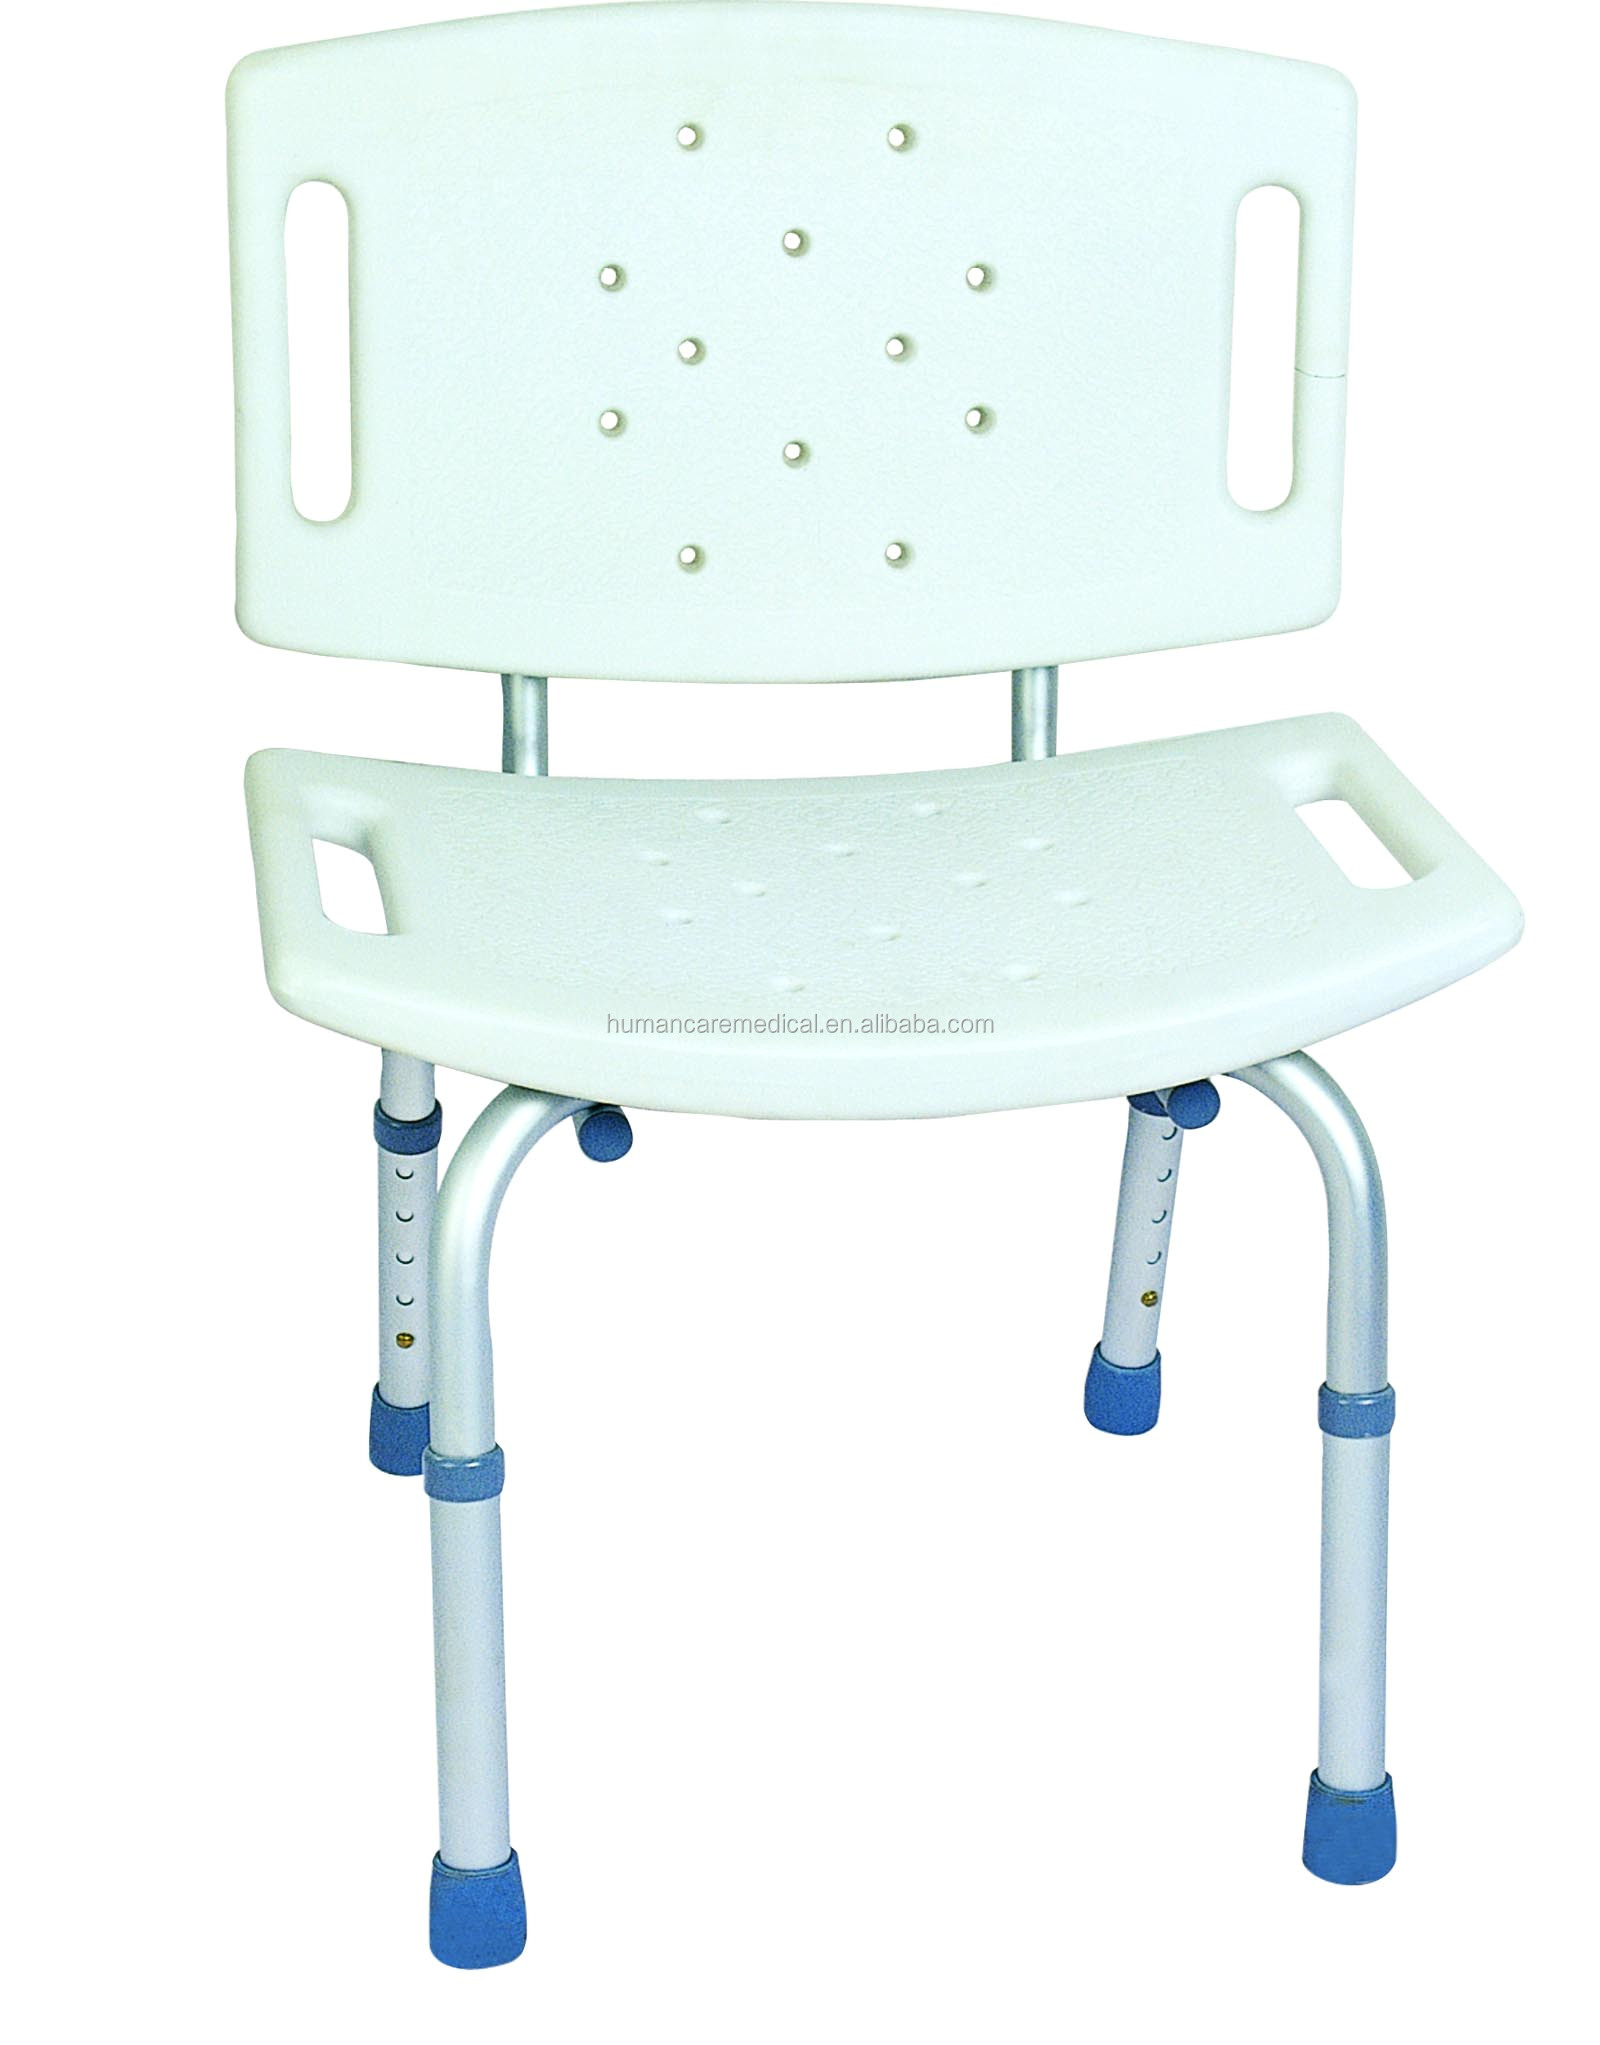 Shower Chair Shower Chair Suppliers and Manufacturers at Alibaba